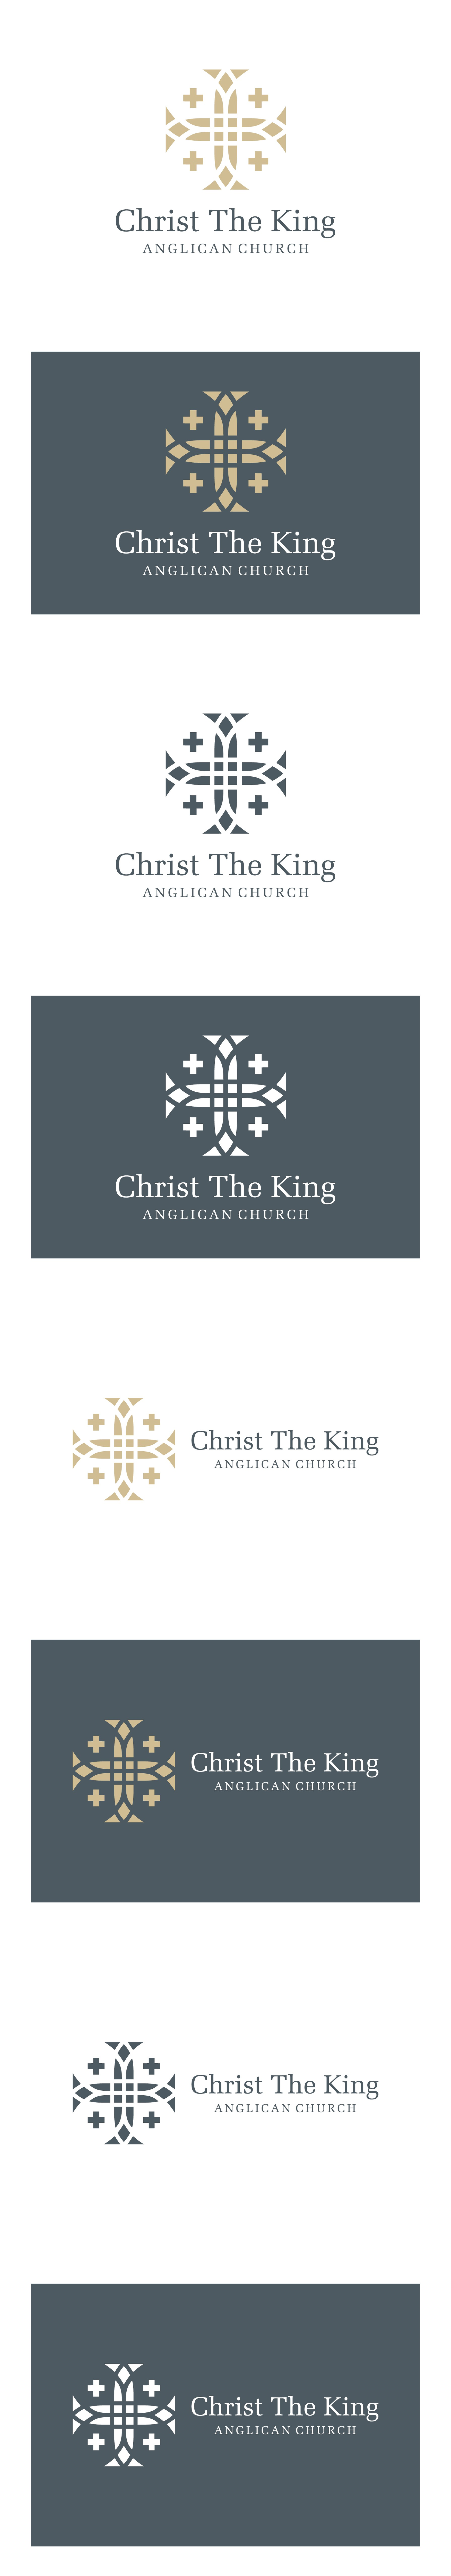 Design a Vibrant but Classic Anglican Church Logo and Brand Guide